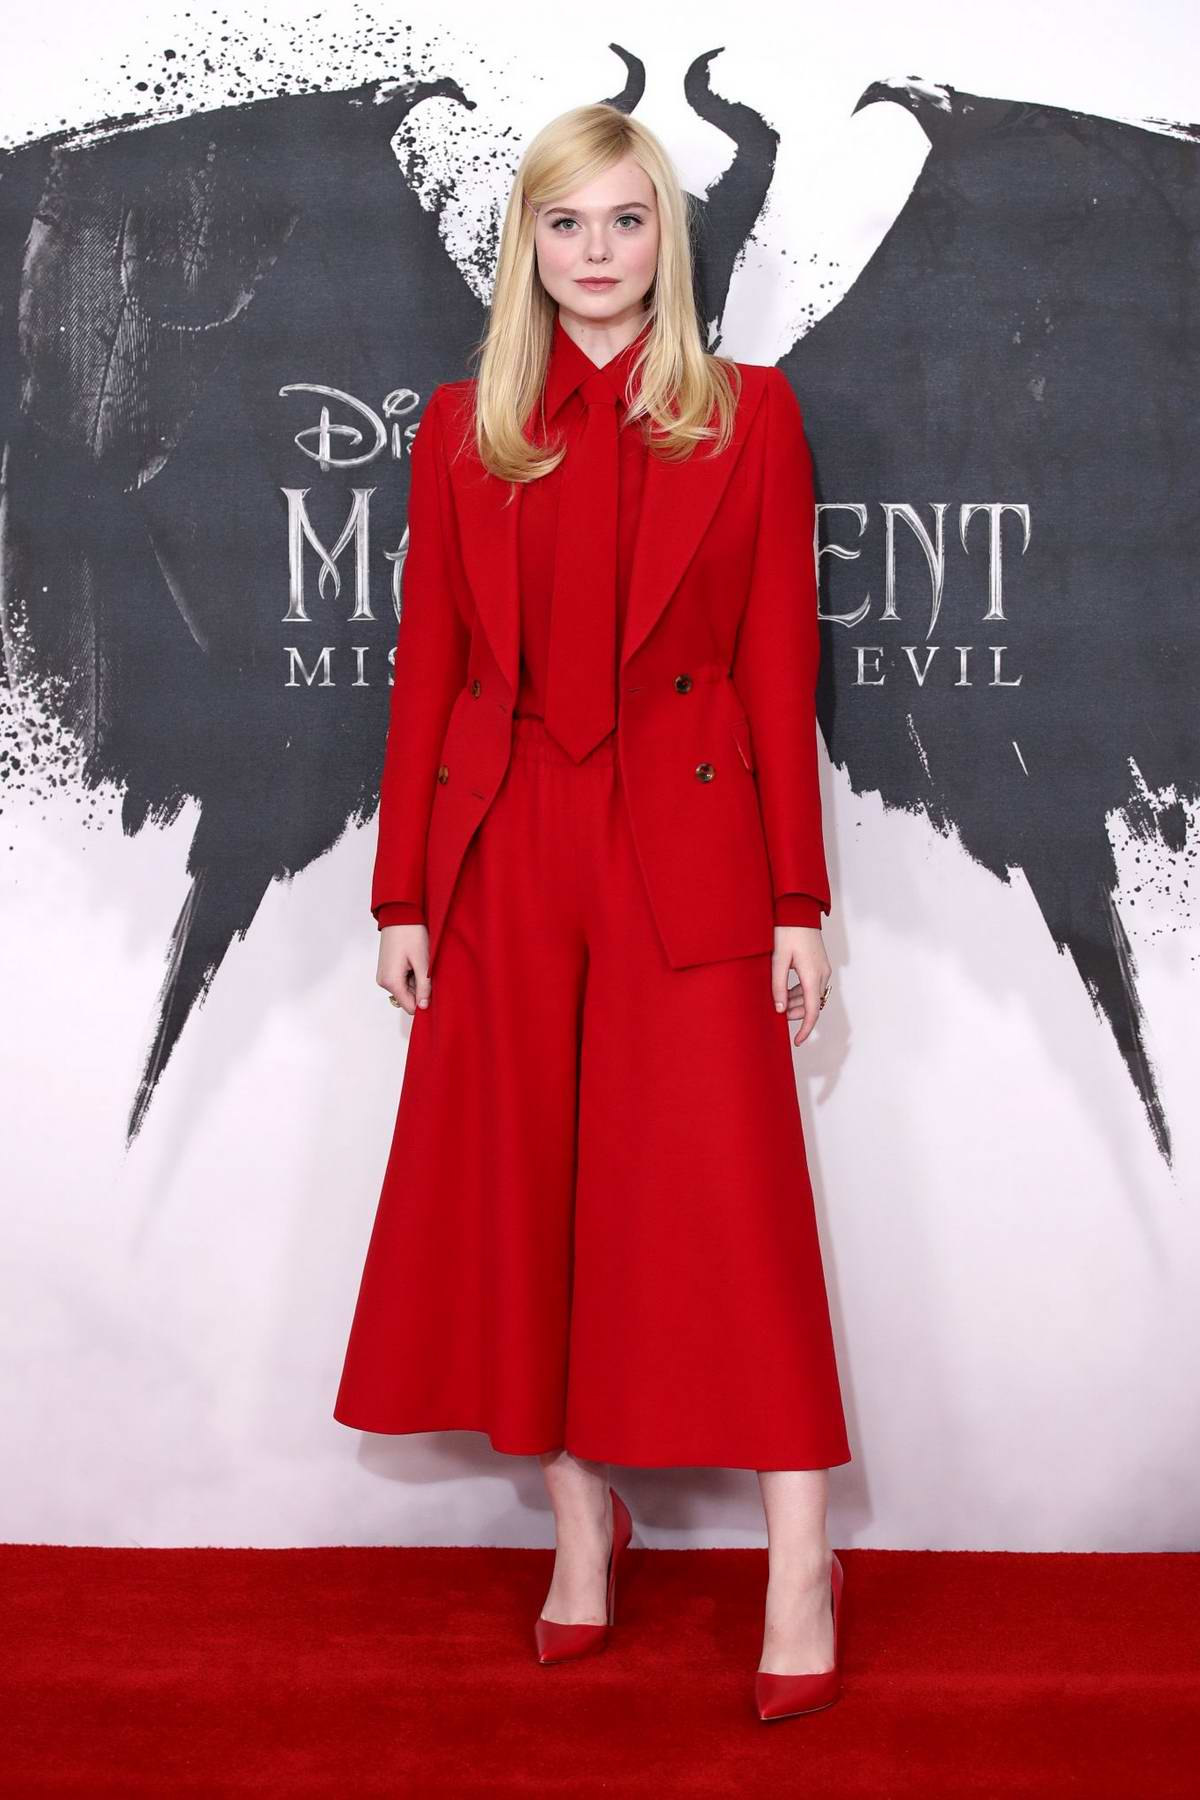 Elle Fanning attends Maleficent: Mistress of Evil photocall at the Mandarin Oriental hotel in London, UK